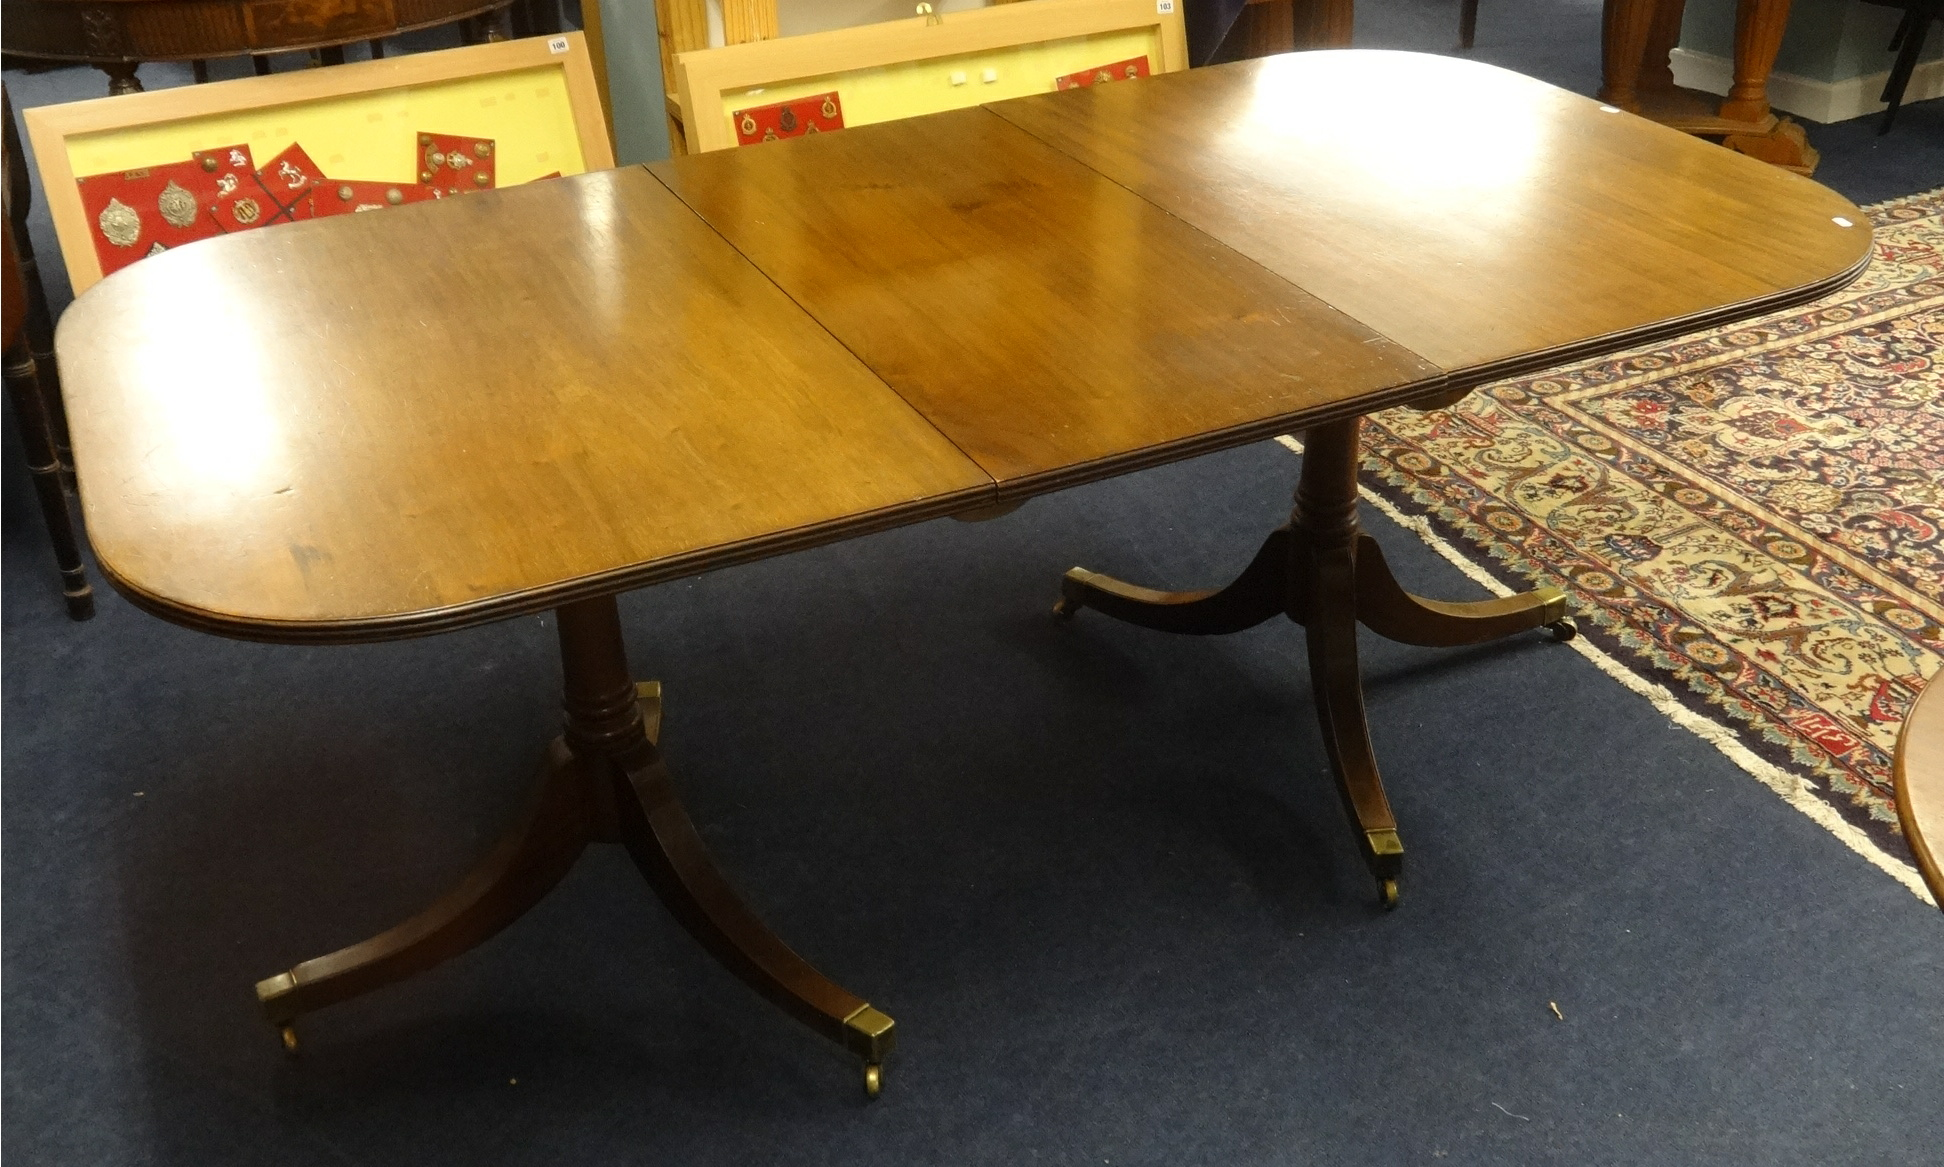 Lot 055 - Mahogany twin pedestal dining table, length 182cm with leaf